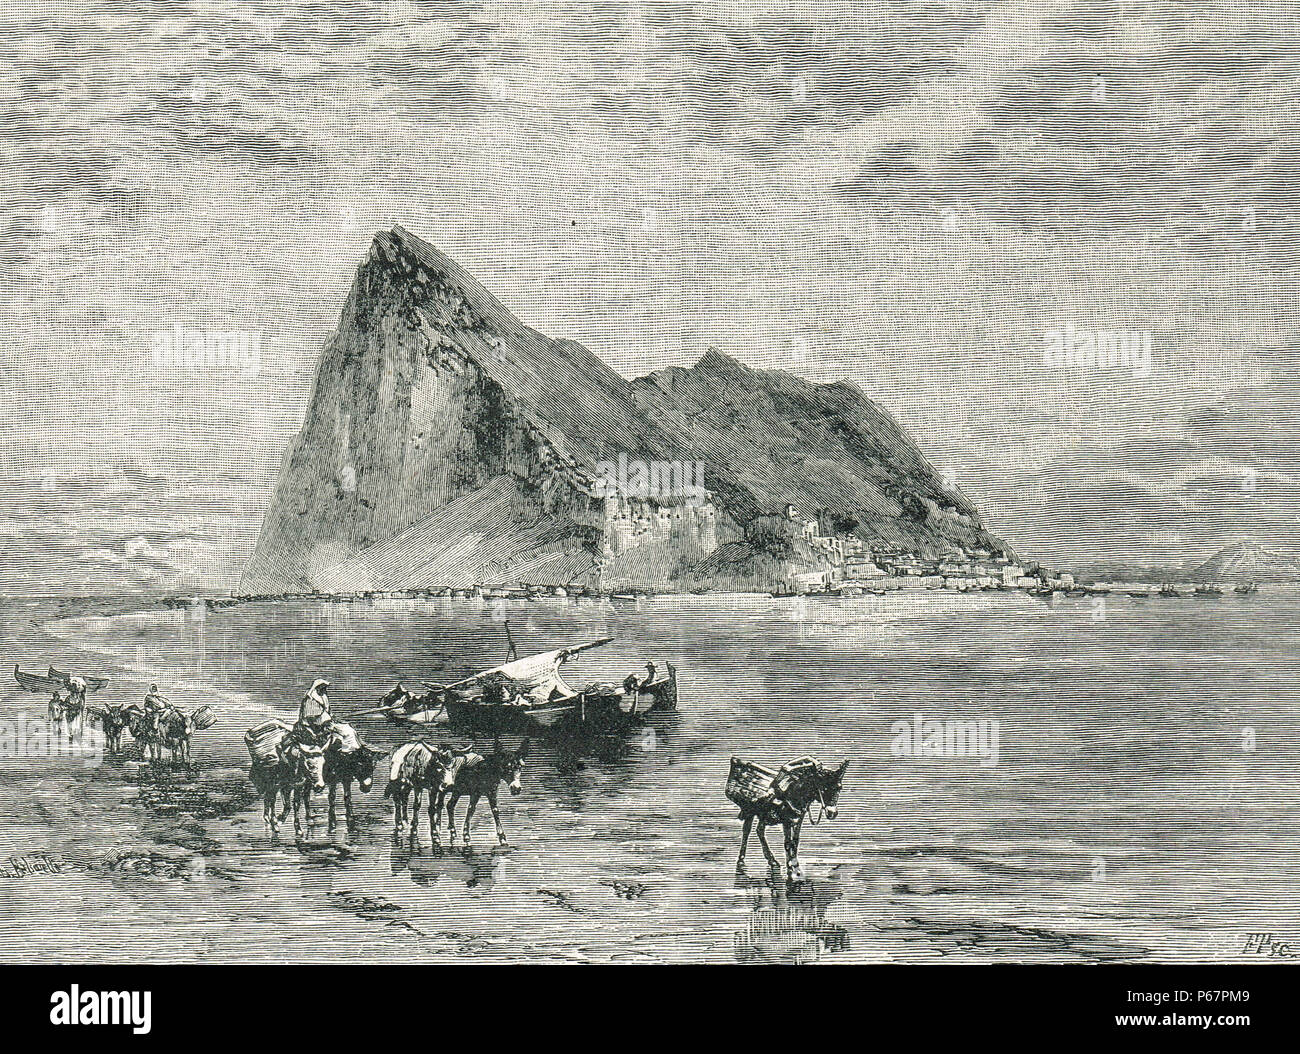 Rock of Gibraltar, 19th century illustration - Stock Image